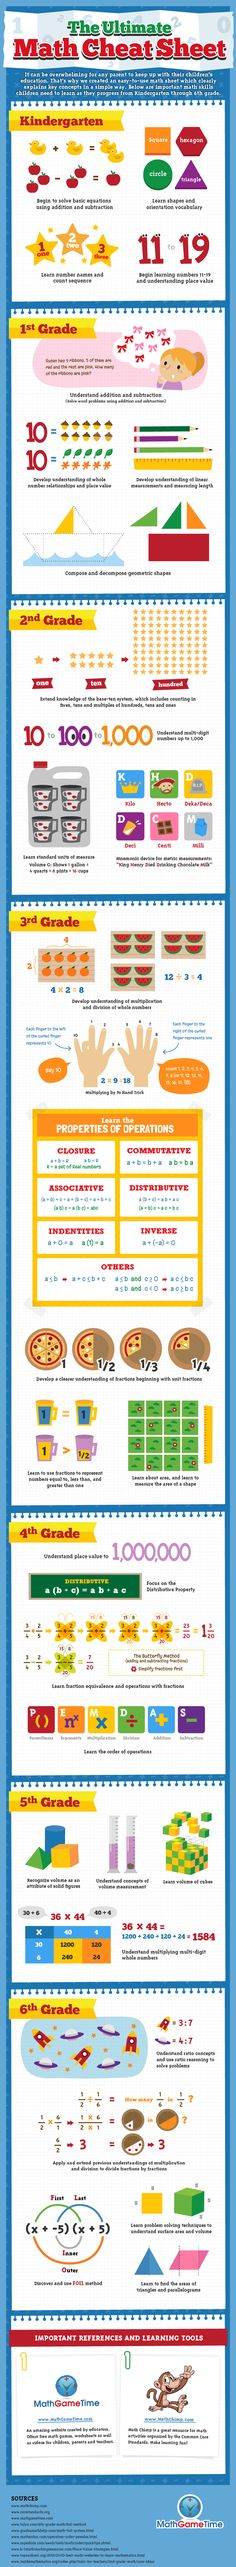 Infographic for math skills grades K-6. What do you think?  Is that what you have covered in general?